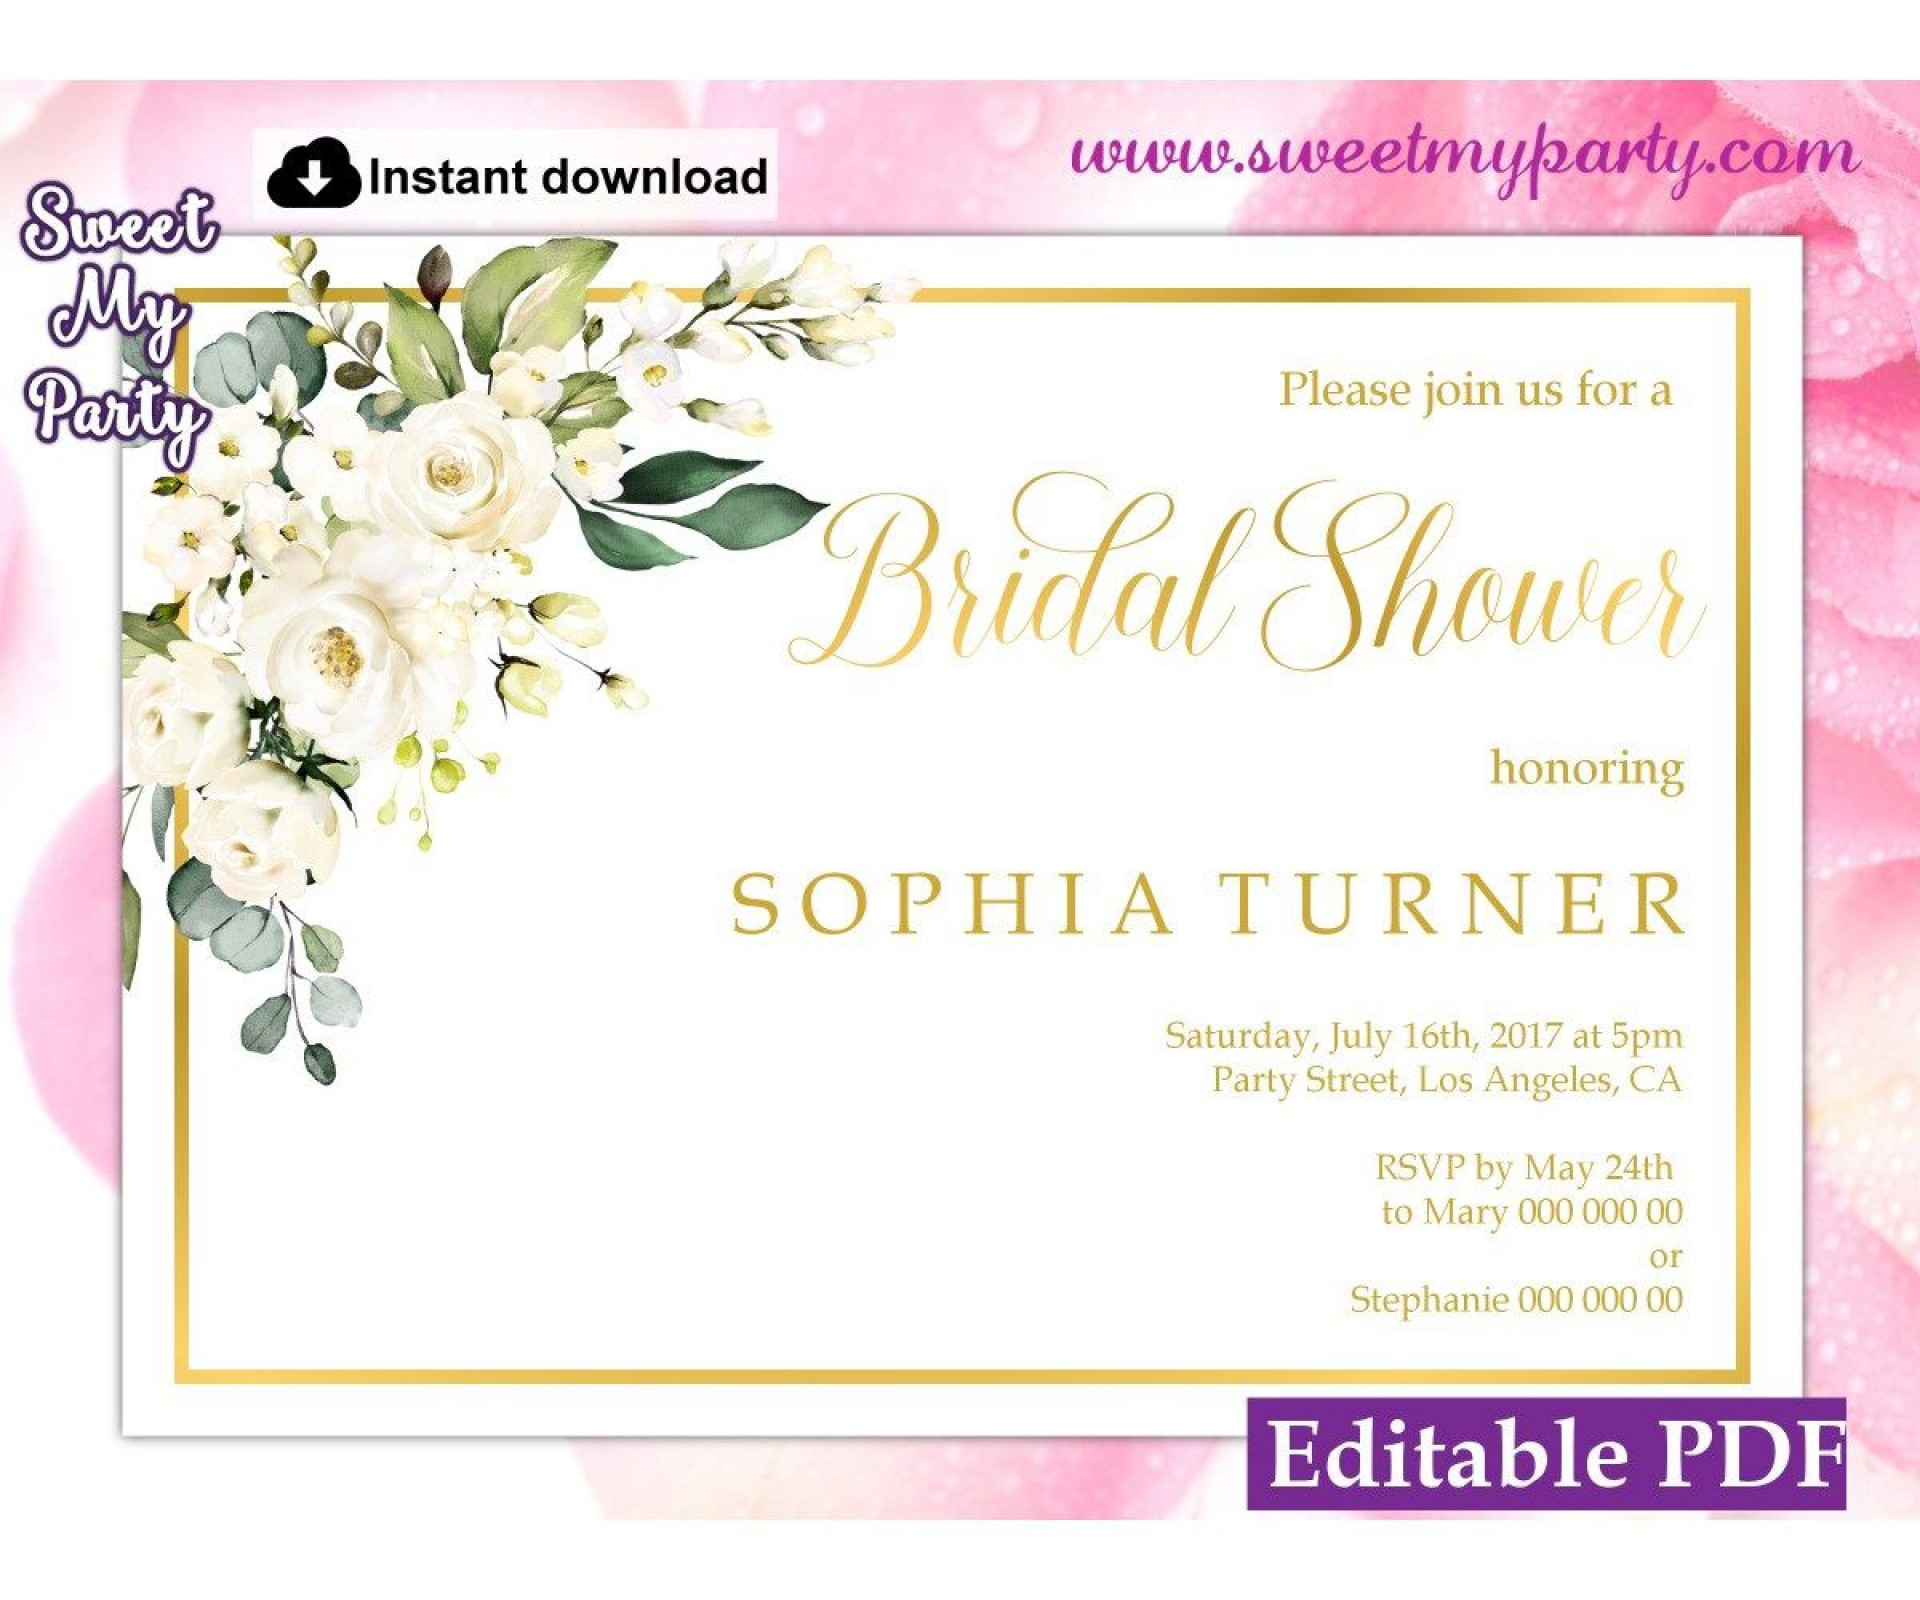 008 Impressive Wedding Shower Invitation Template Image  Templates Bridal Pinterest Microsoft Word Free For1920